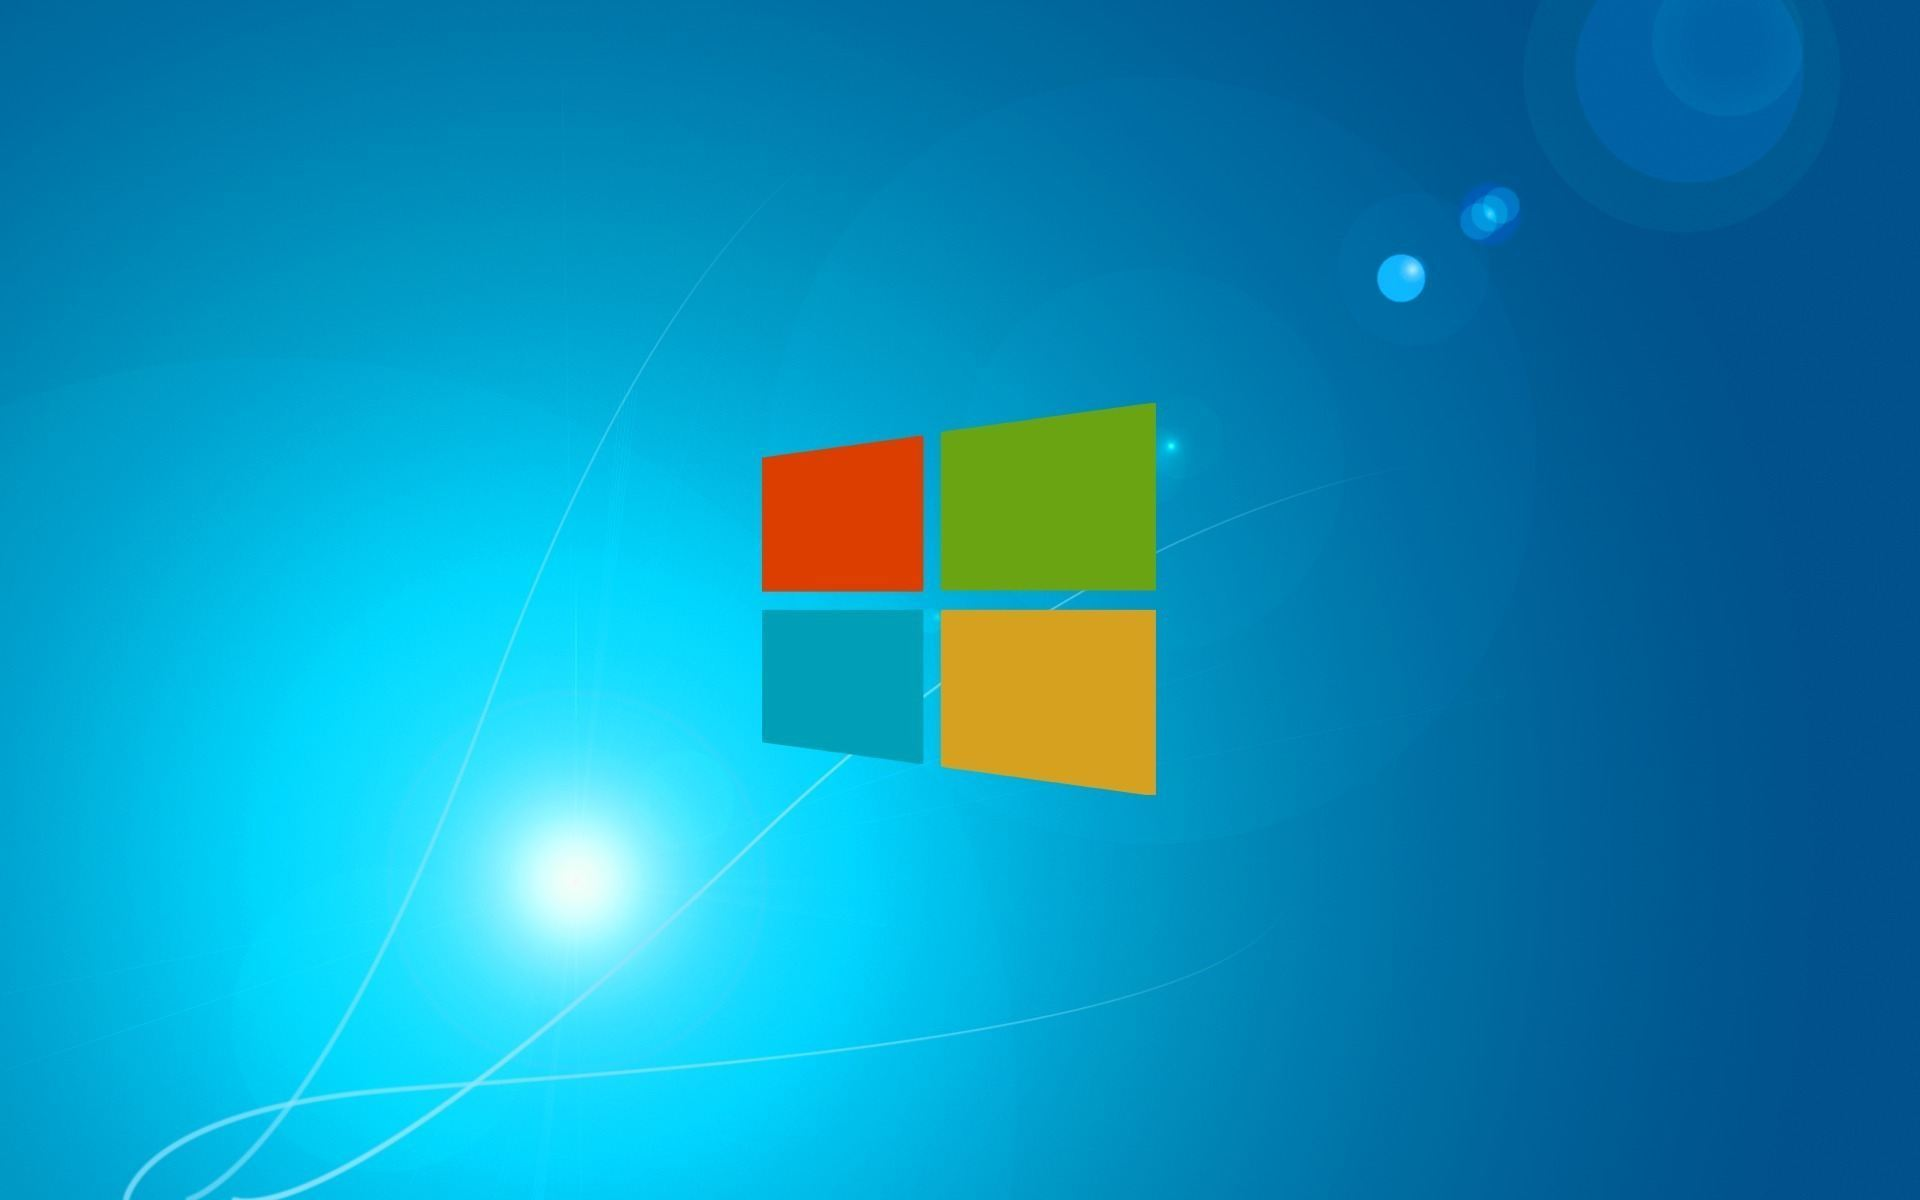 Wallpaper Gif Windows 8